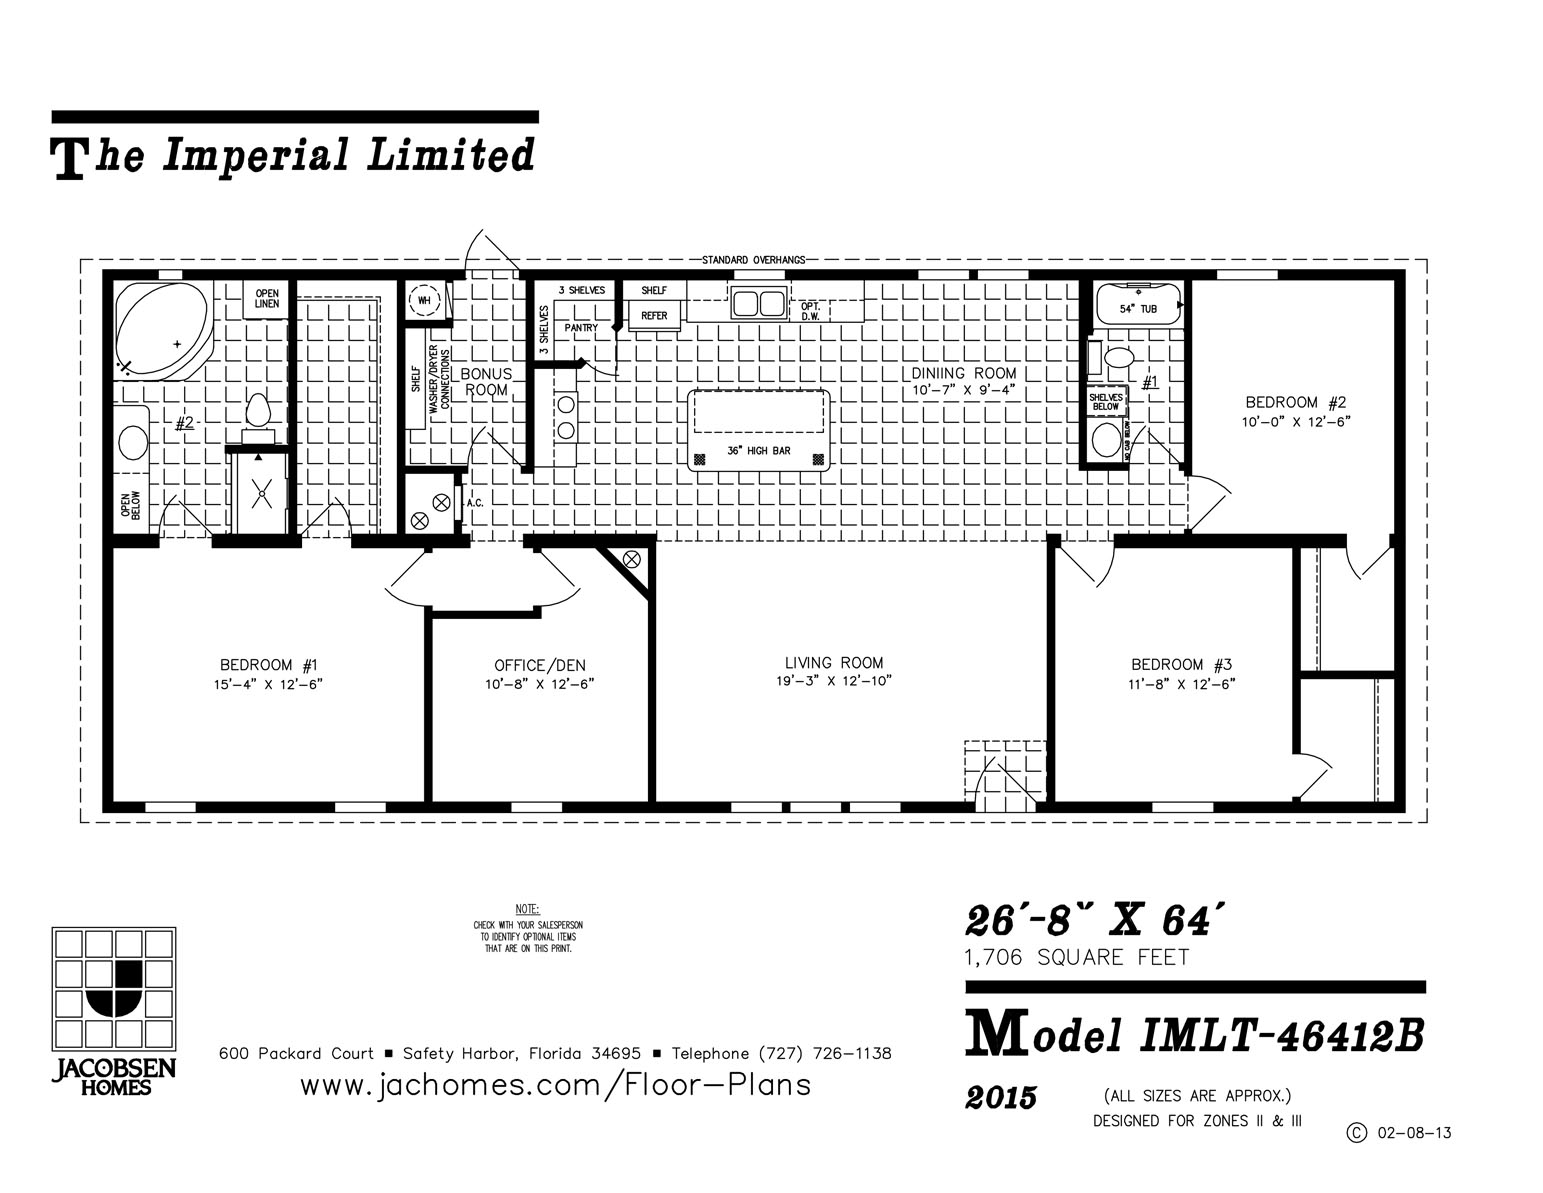 Imlt 46412b mobile home floor plan ocala custom homes for Custom home building plans